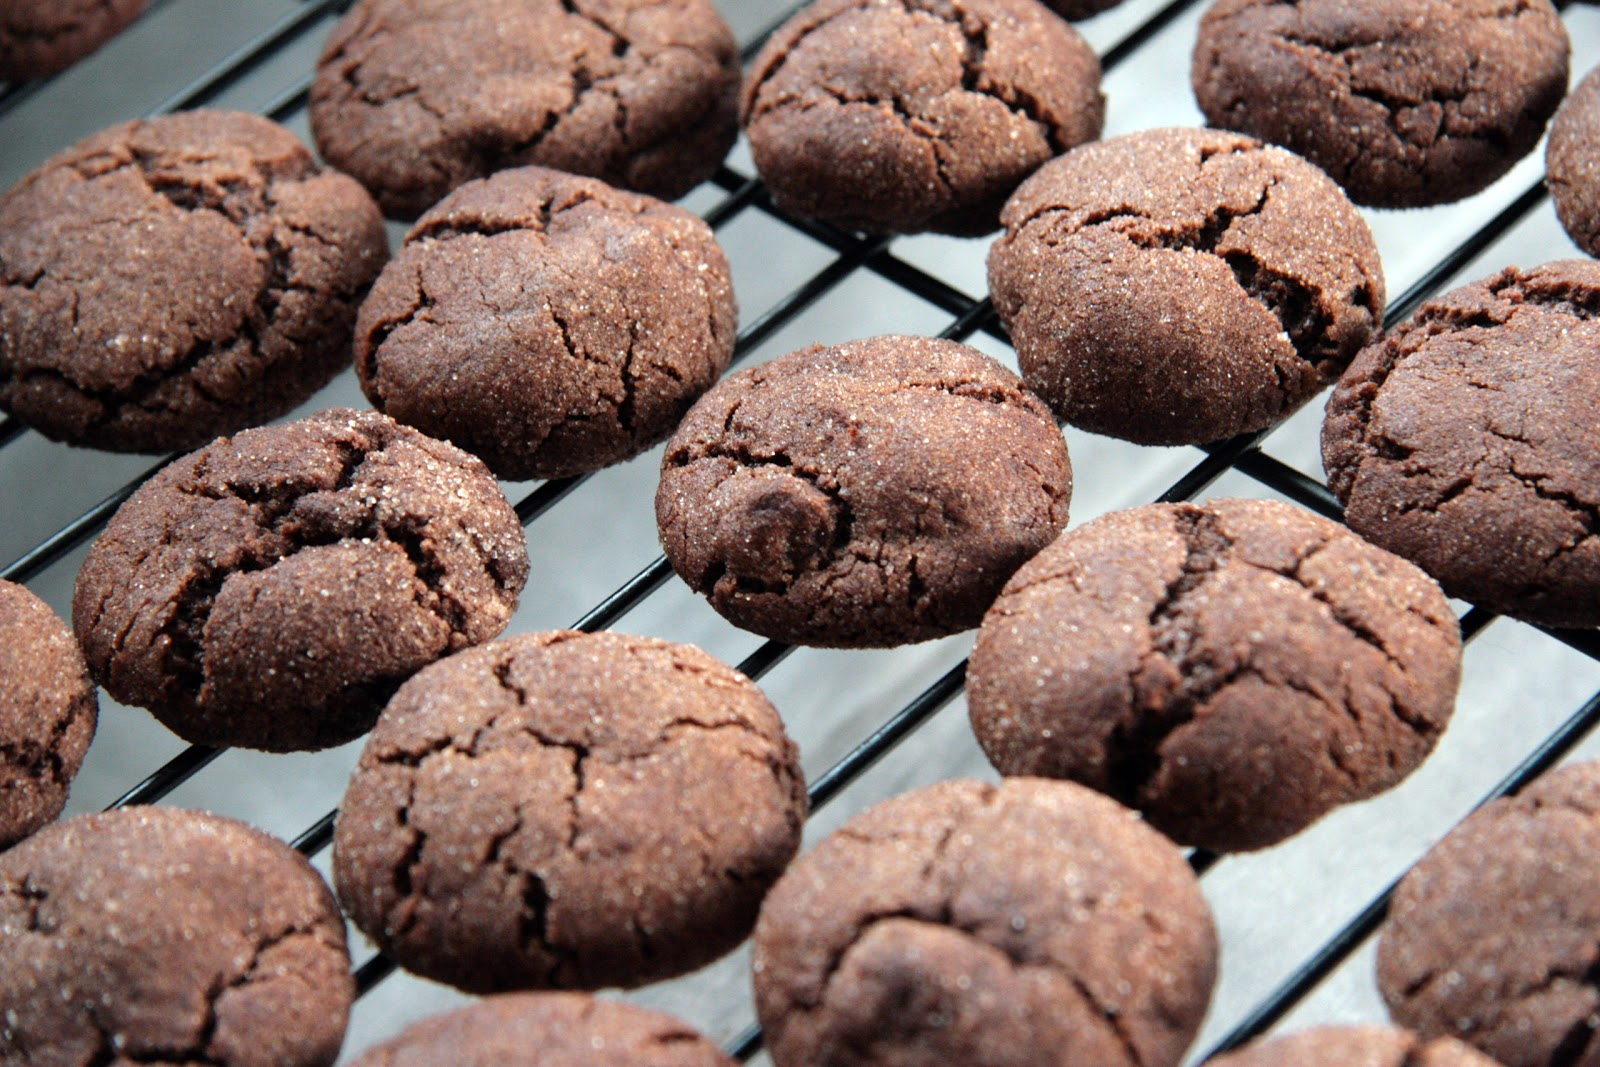 Spiced chocolate cookies on cooling rack